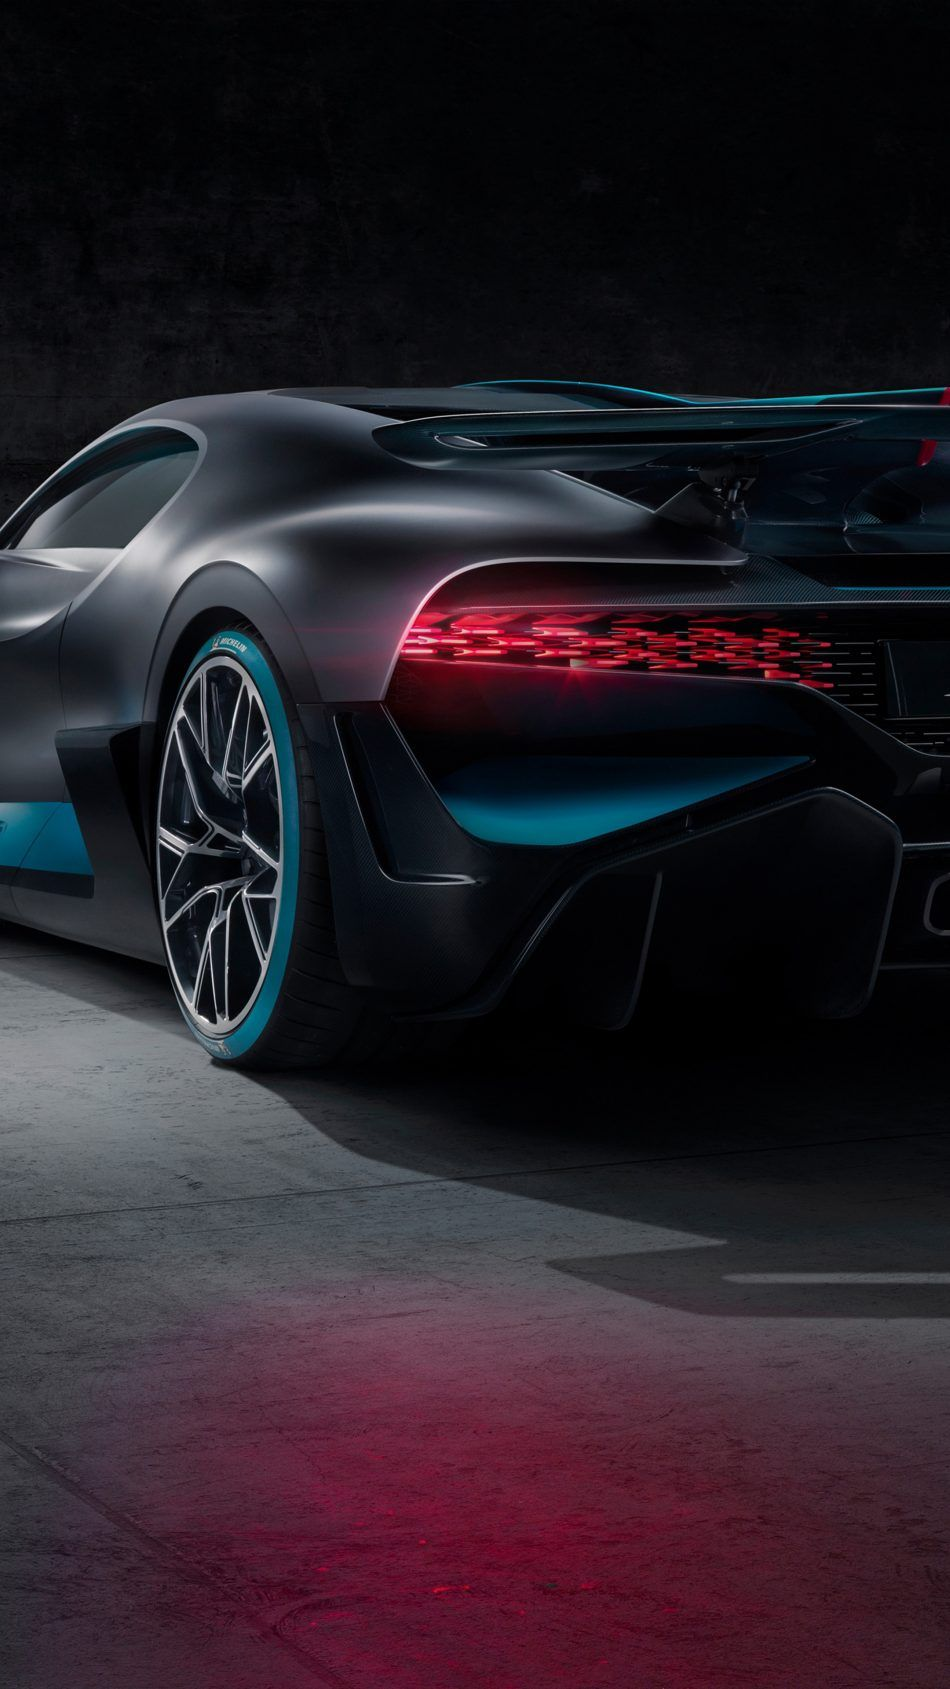 Bugatti Divo 2019 4k Ultra Hd Mobile Wallpaper Car Wallpaper For Mobile Car Wallpapers Car Backgrounds